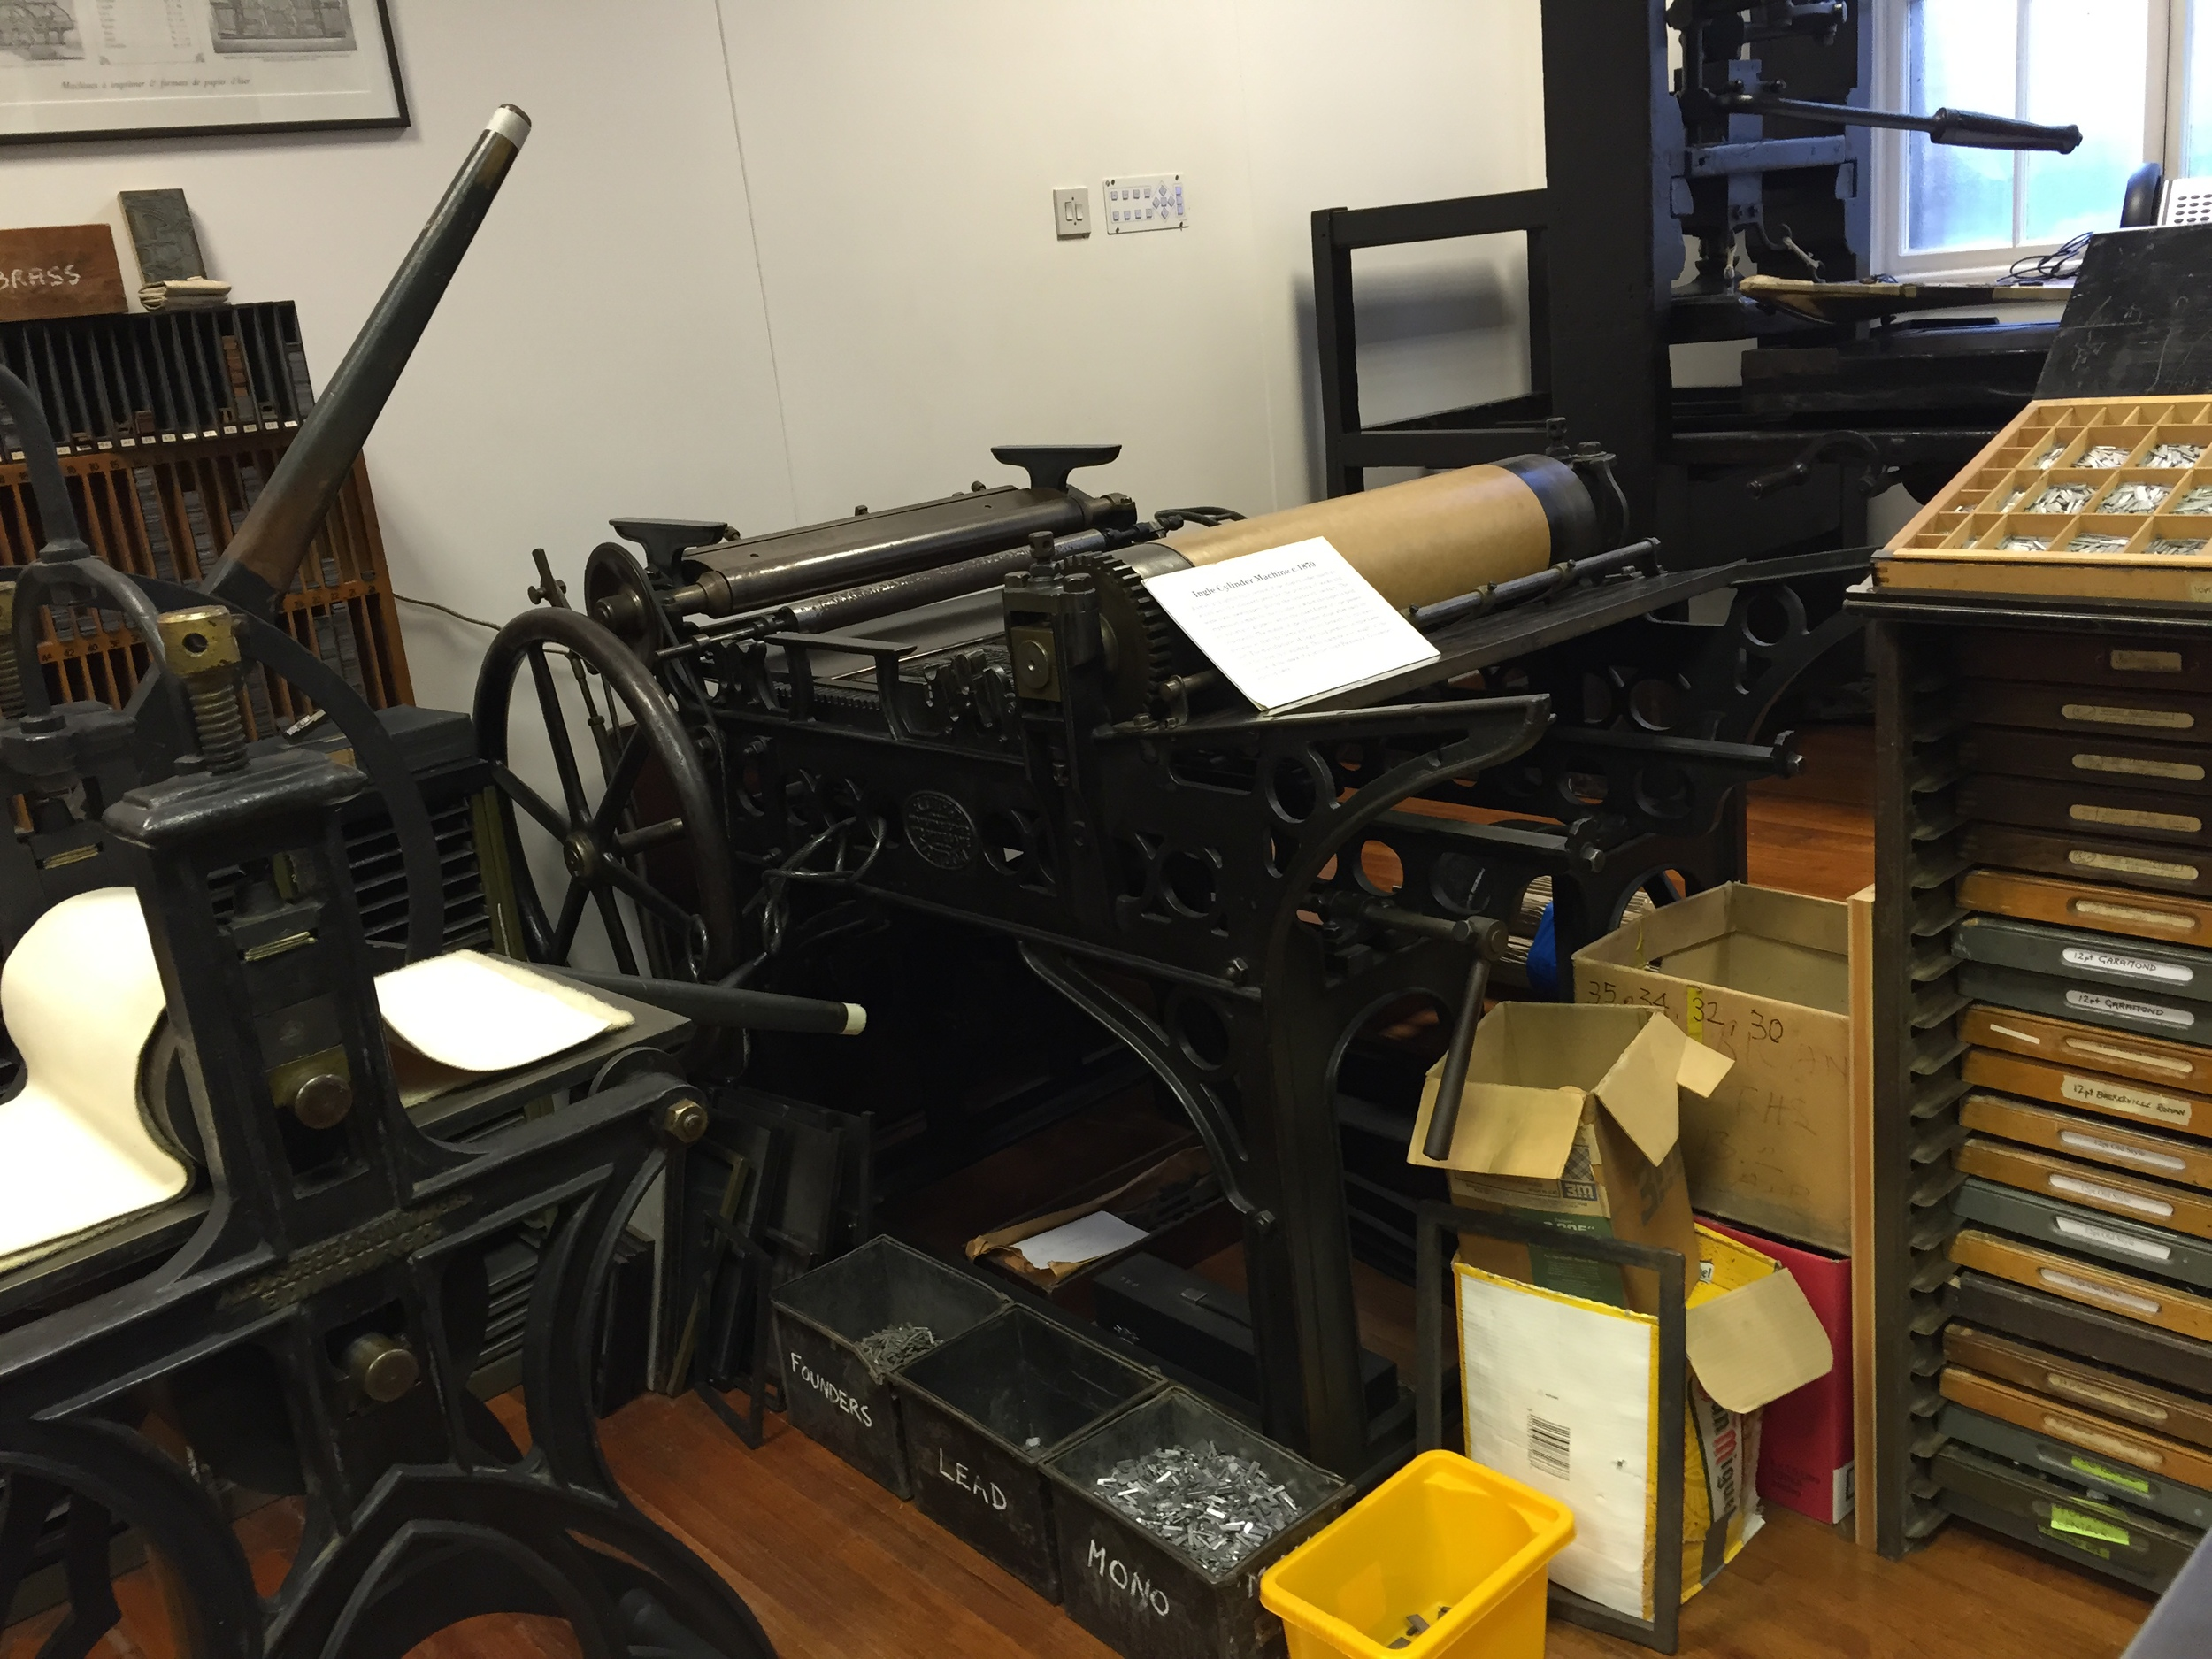 In the basement were loads of type and machines.